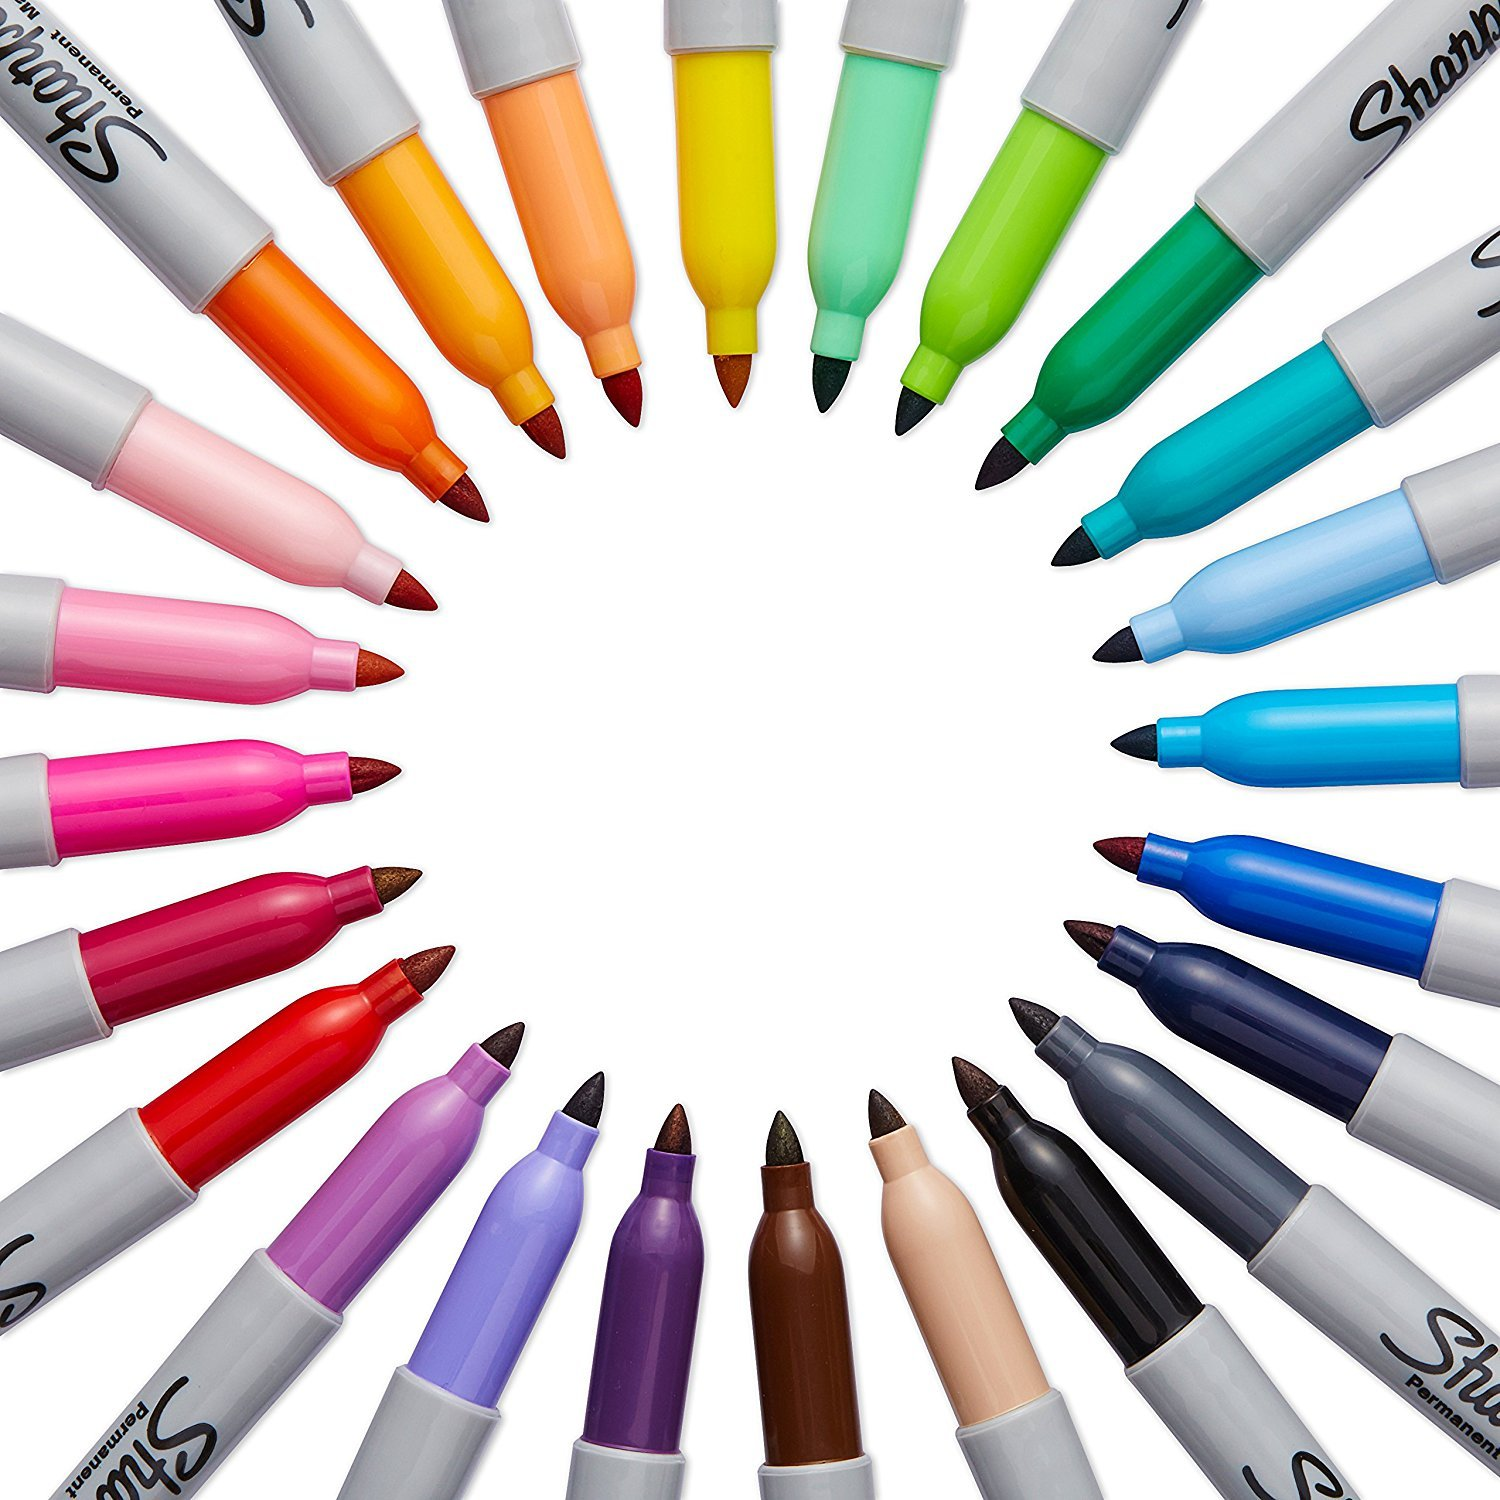 Sharpie 75846 Fine Point Permanent Markers, Assorted Colors; 3 Sets of 24 Markers, Total 72 Markers; Proudly Permanent Ink Marks on Paper, Plastic, Metal and Most Other Surfaces by Sharpie (Image #3)